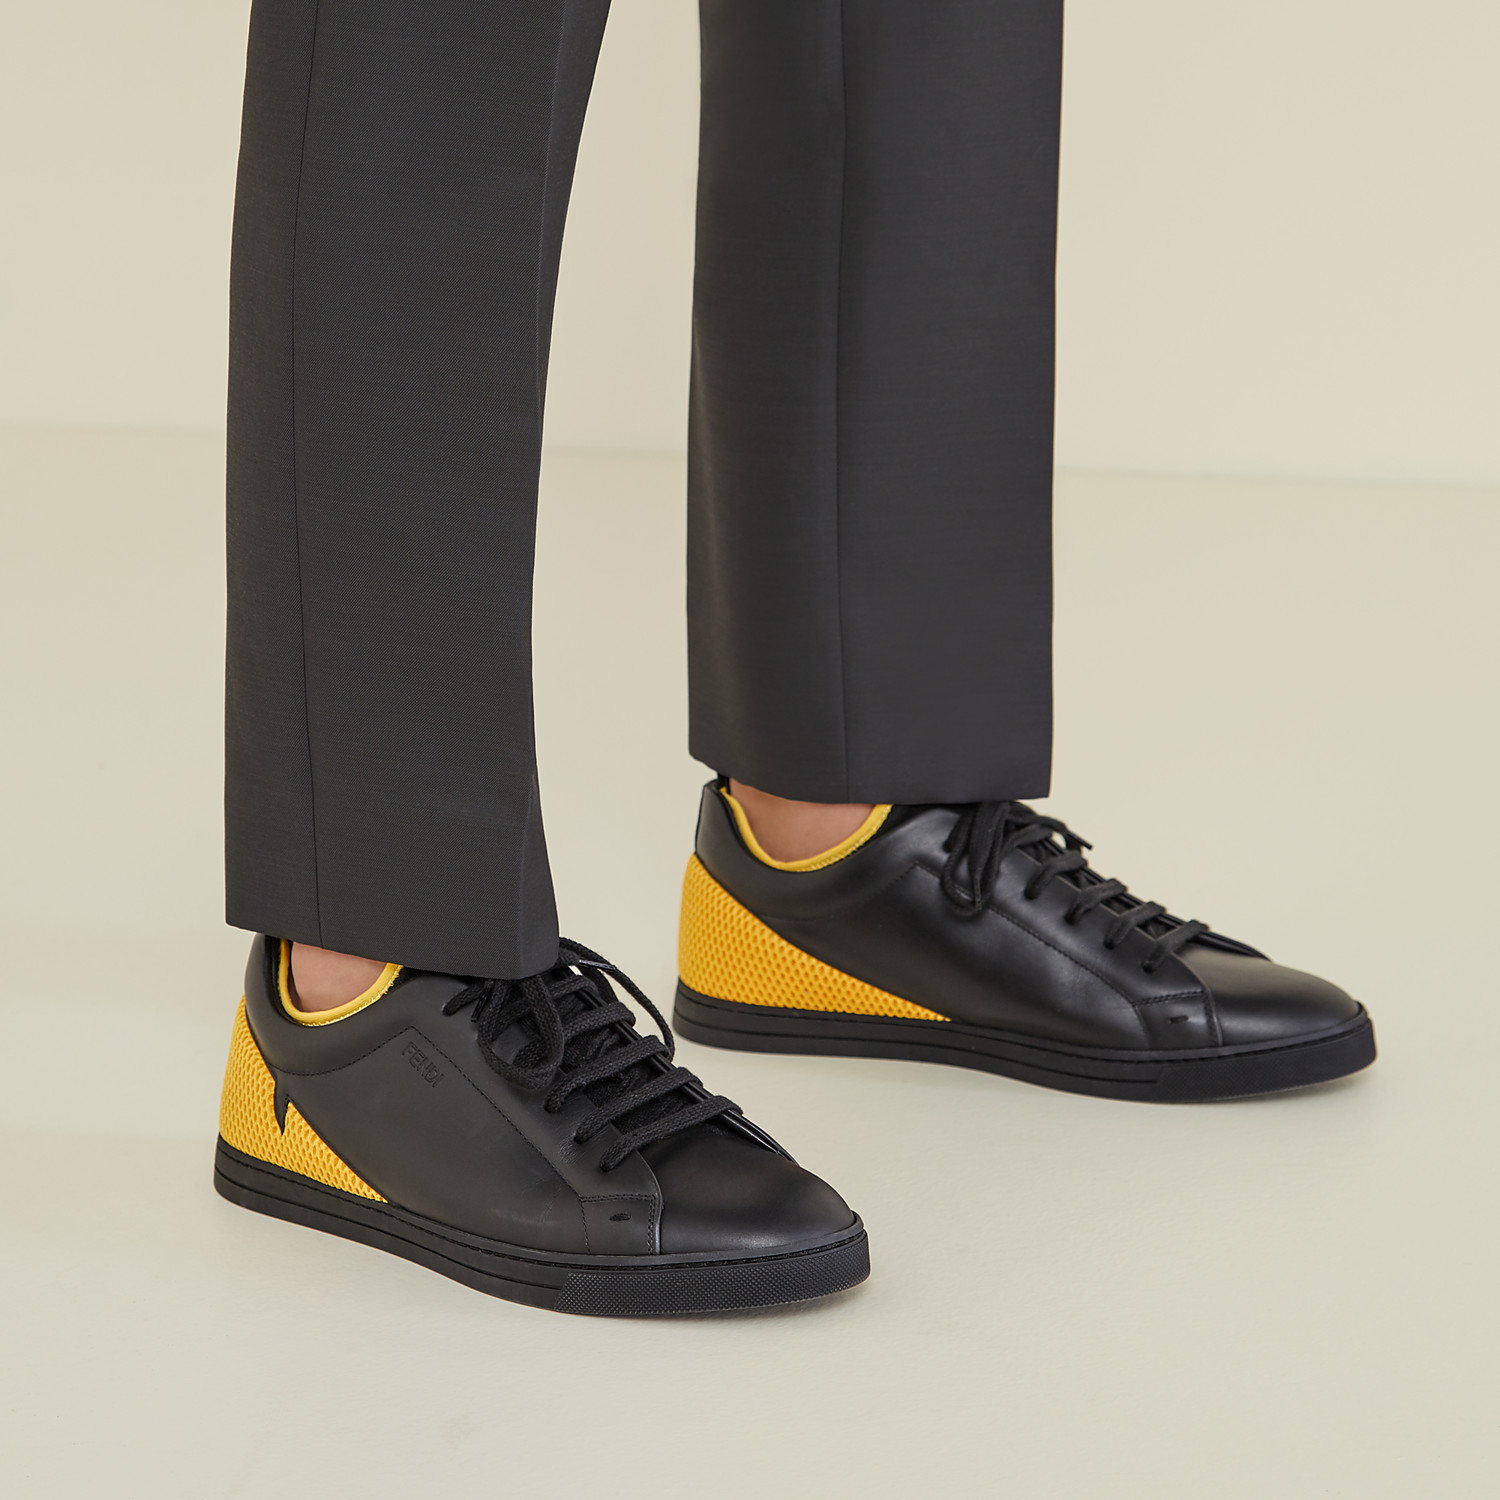 FENDI SNEAKERS - Black leather low-tops - view 5 detail